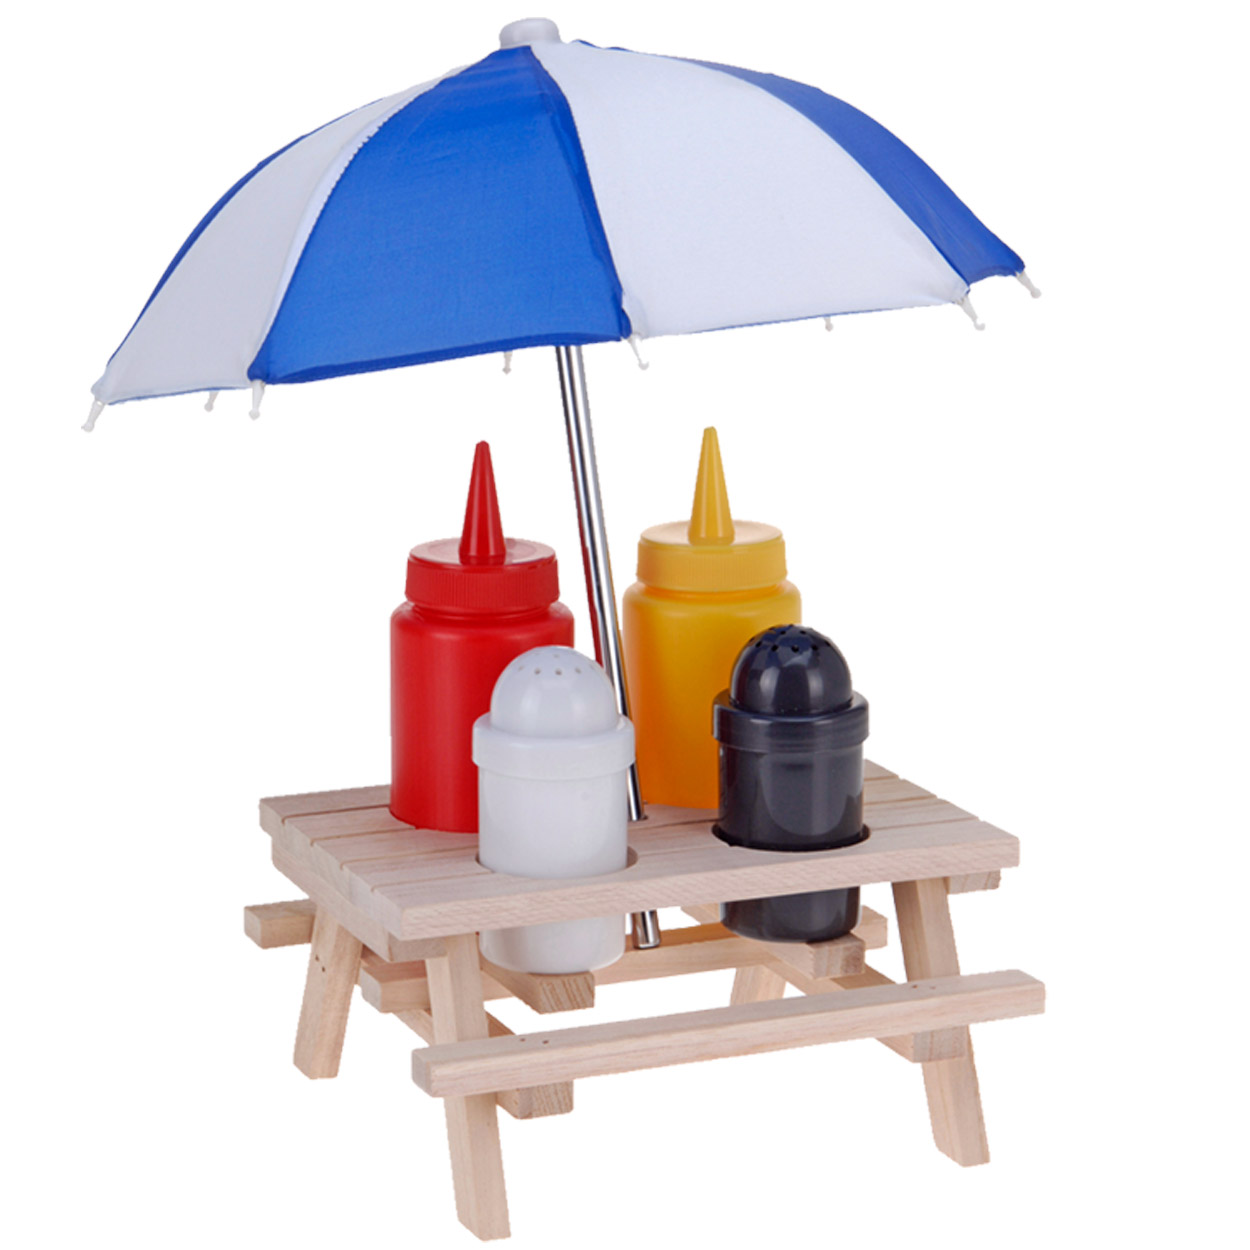 Novelty Wooden Picnic Table With Umbrella Condiment Set